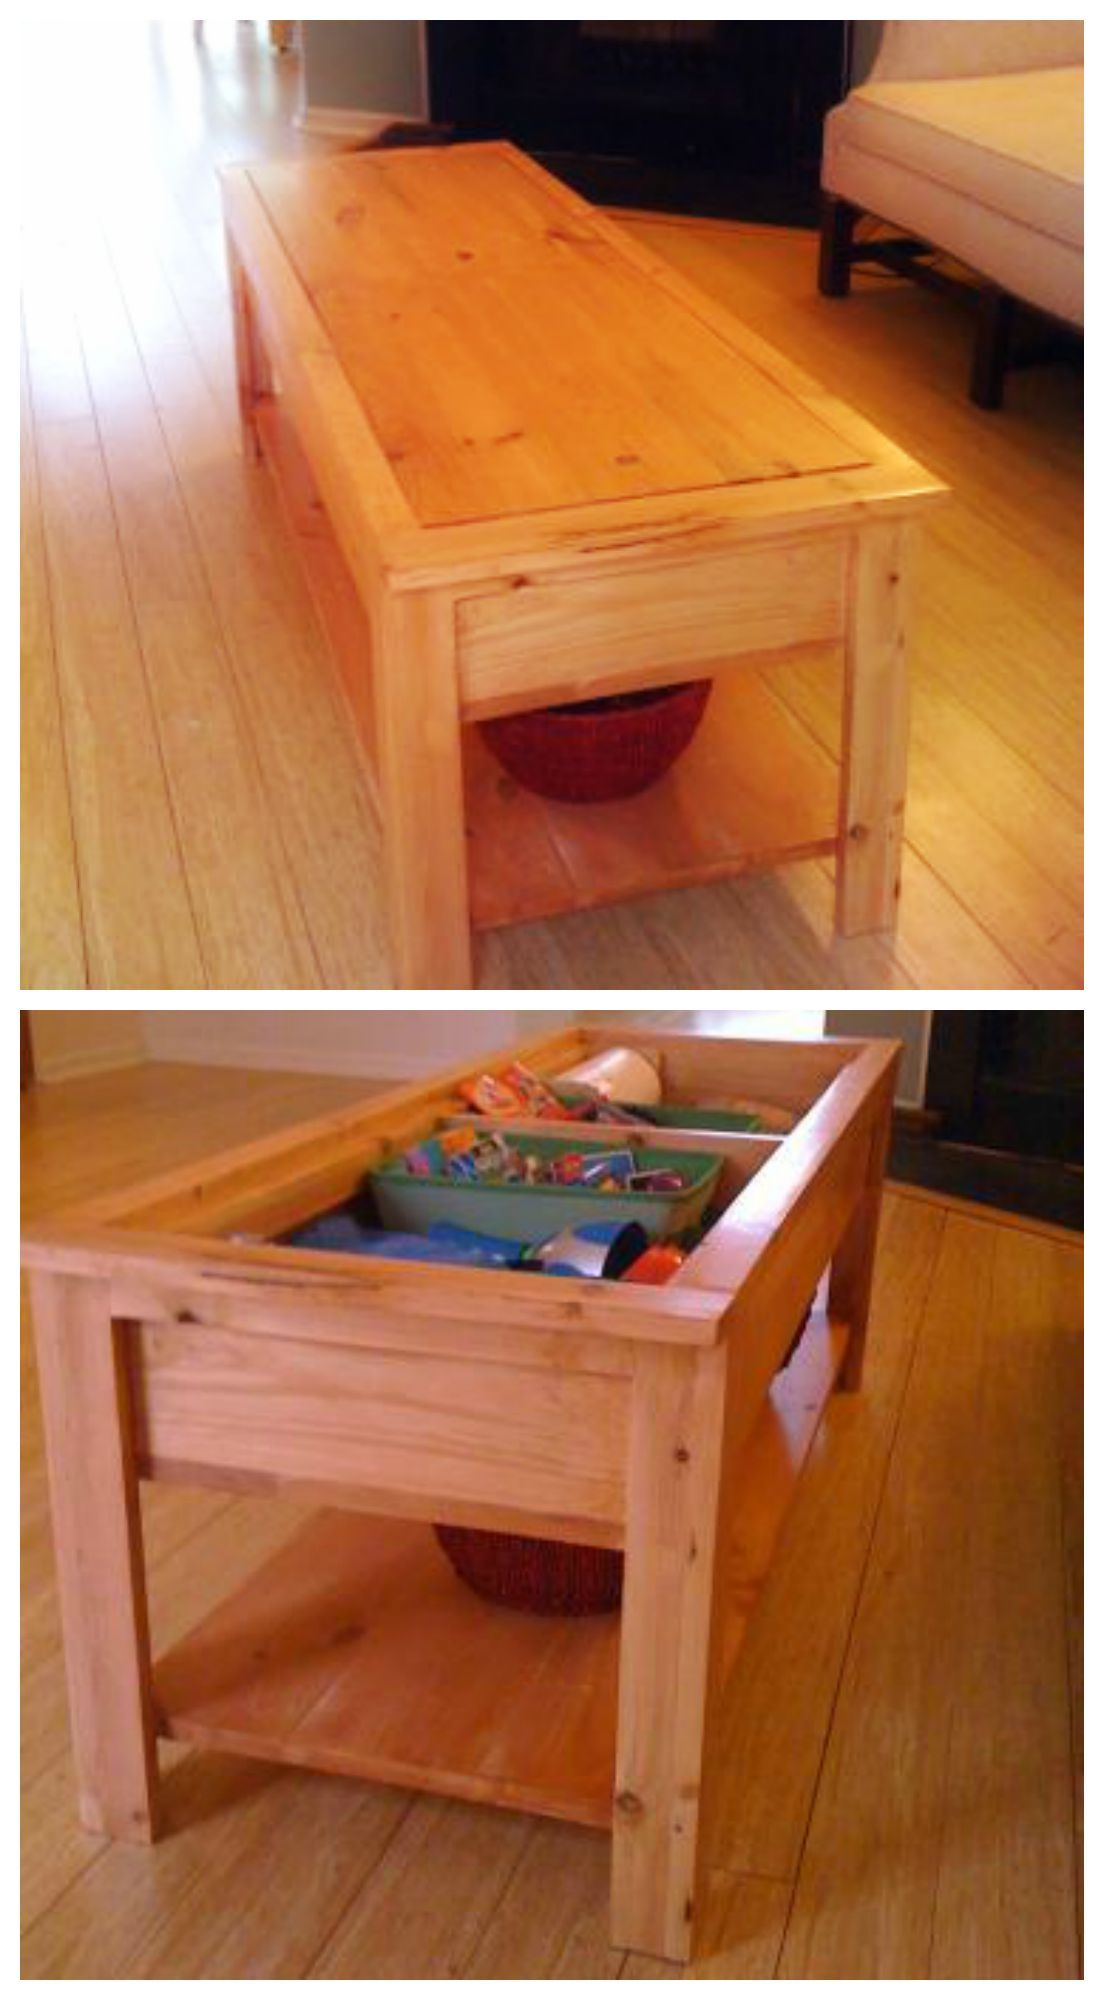 Tv Hidden In Coffee Table Coffee Table With Hidden Storage For Toys Or Legos